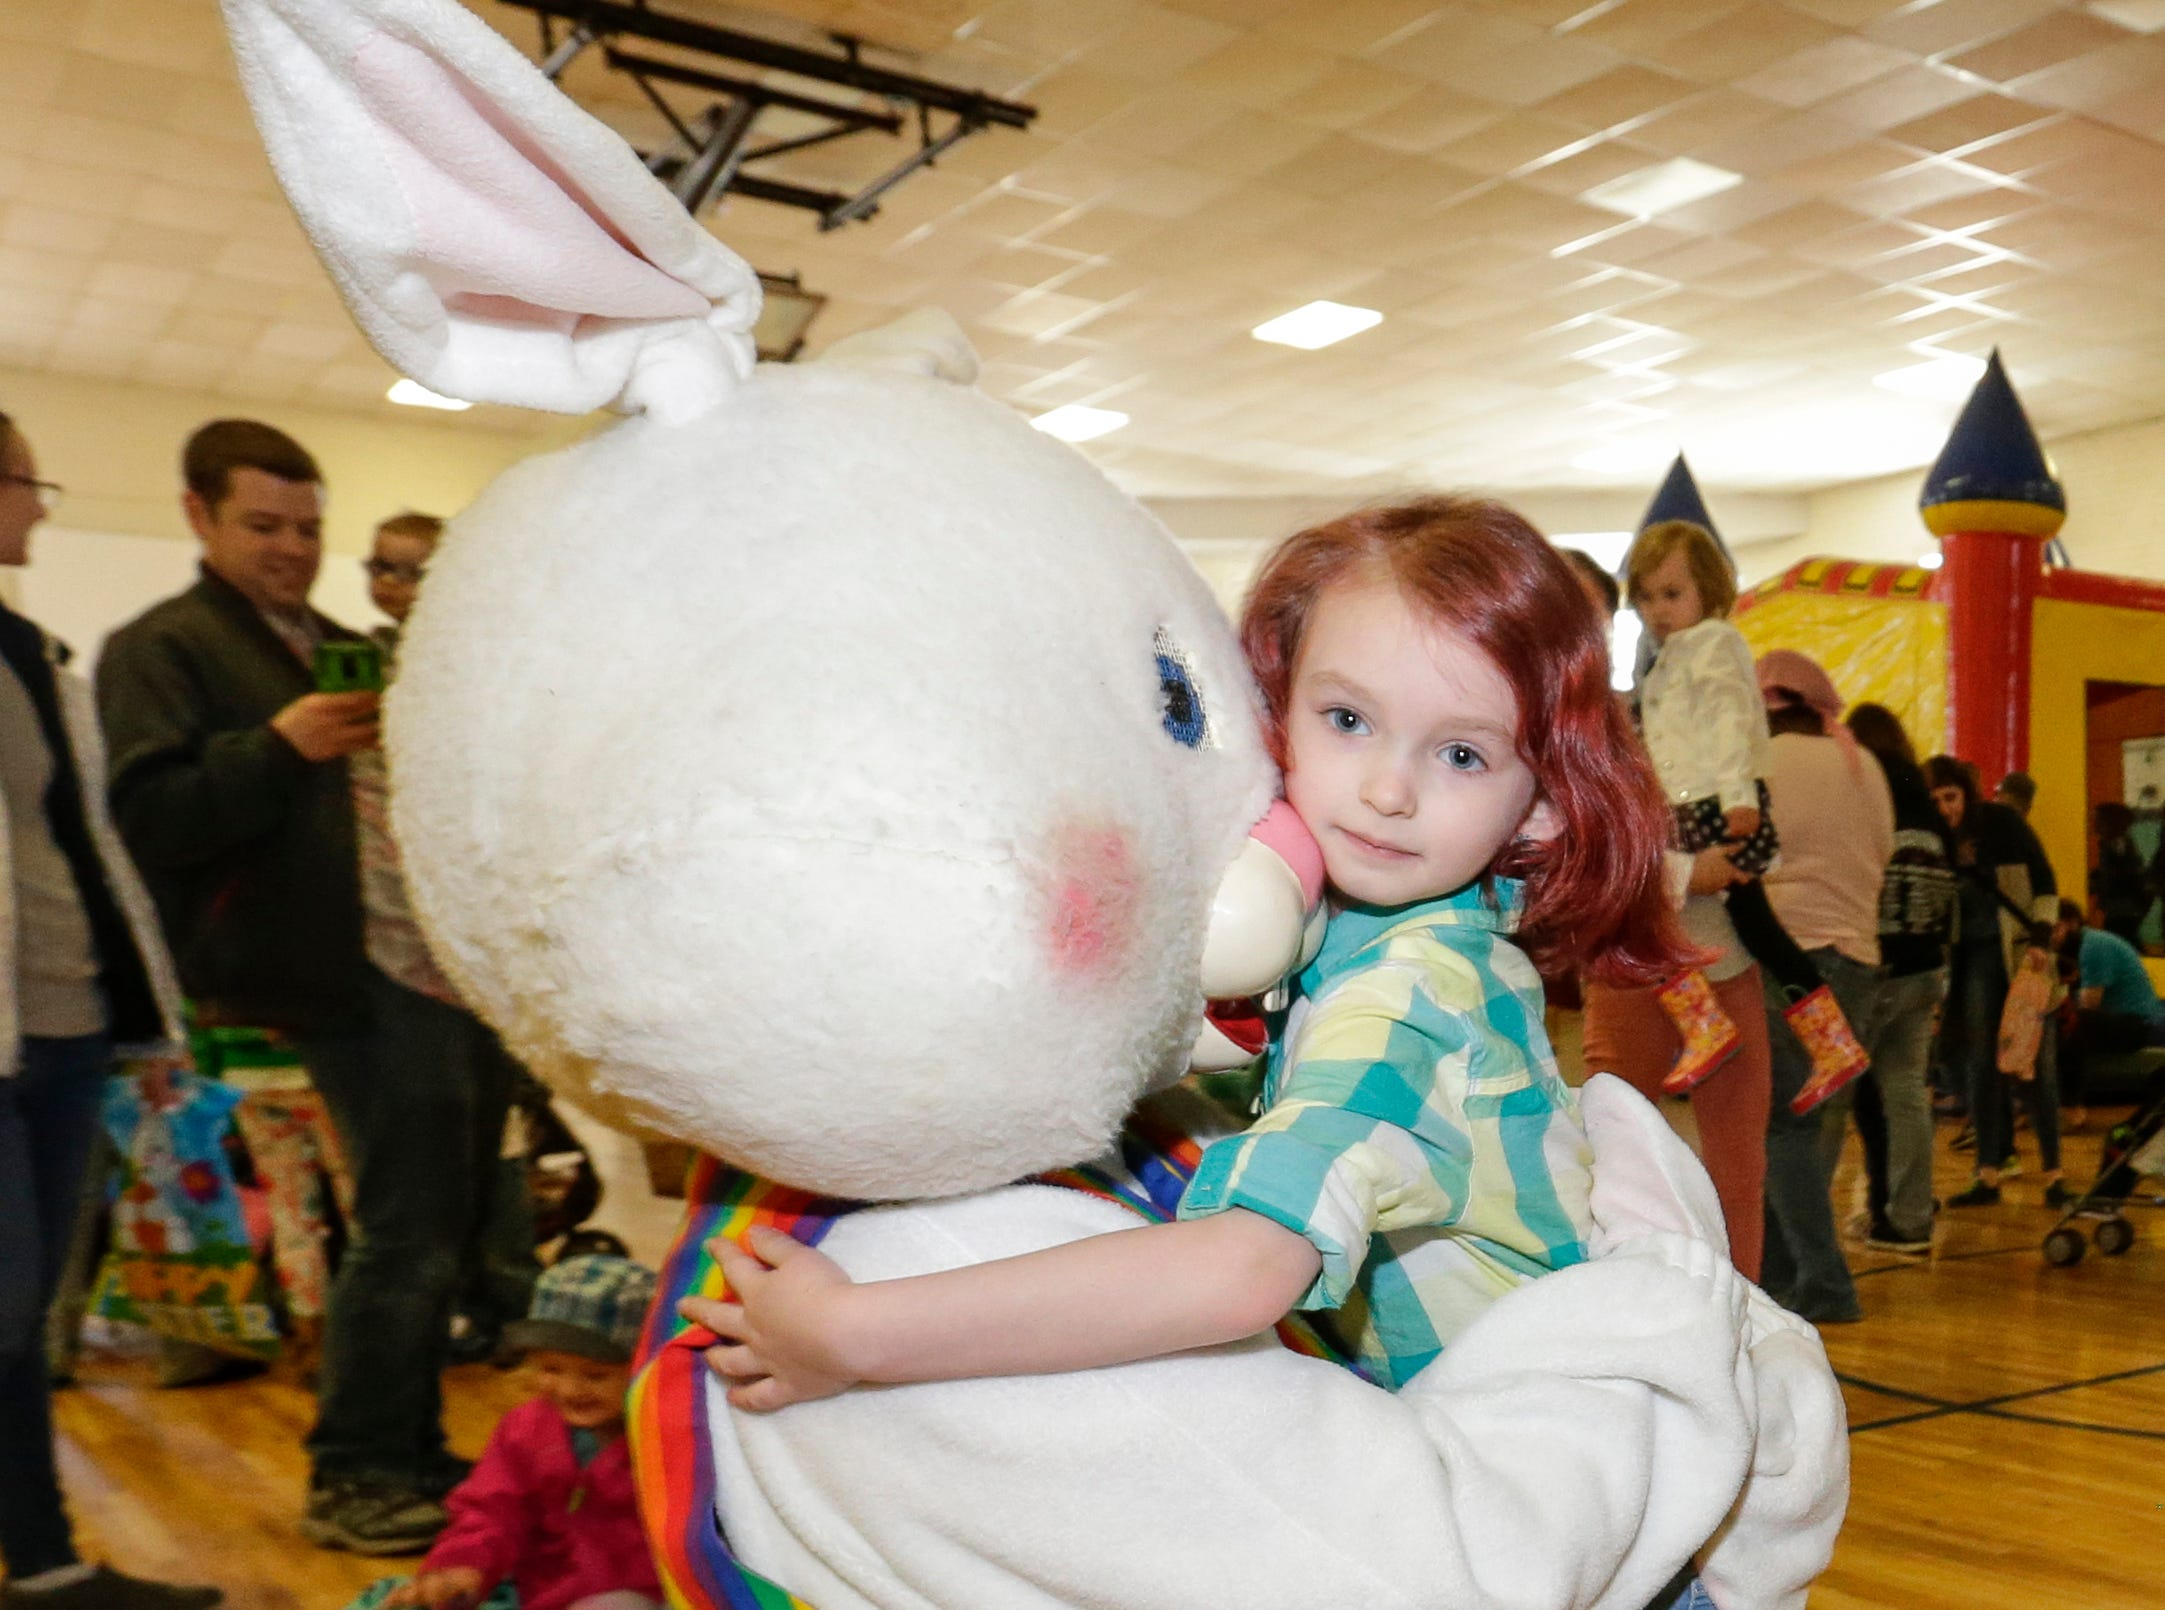 Jillian Krause, 5, hugs the Easter bunny during the Easter Eggstravaganza at Citizen Park Saturday, April 20, 2019, in Manitowoc, Wis. Joshua Clark/USA TODAY NETWORK-Wisconsin